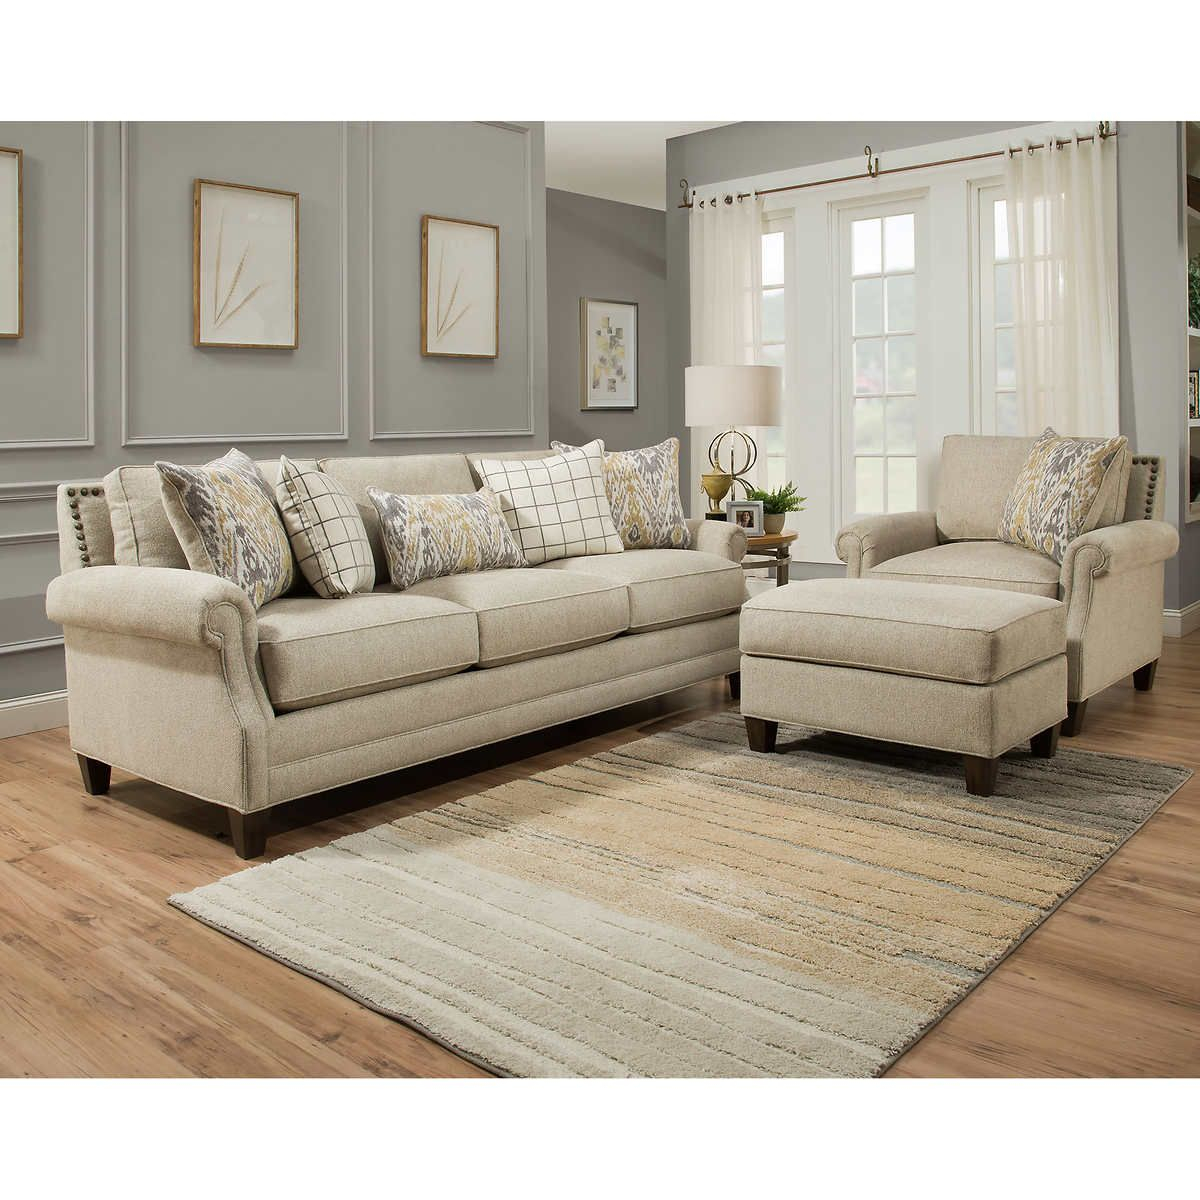 Kerrington 3 Piece Fabric Set Off White In 2019 Dream with regard to 14 Genius Designs of How to Craft Costco Living Room Sets